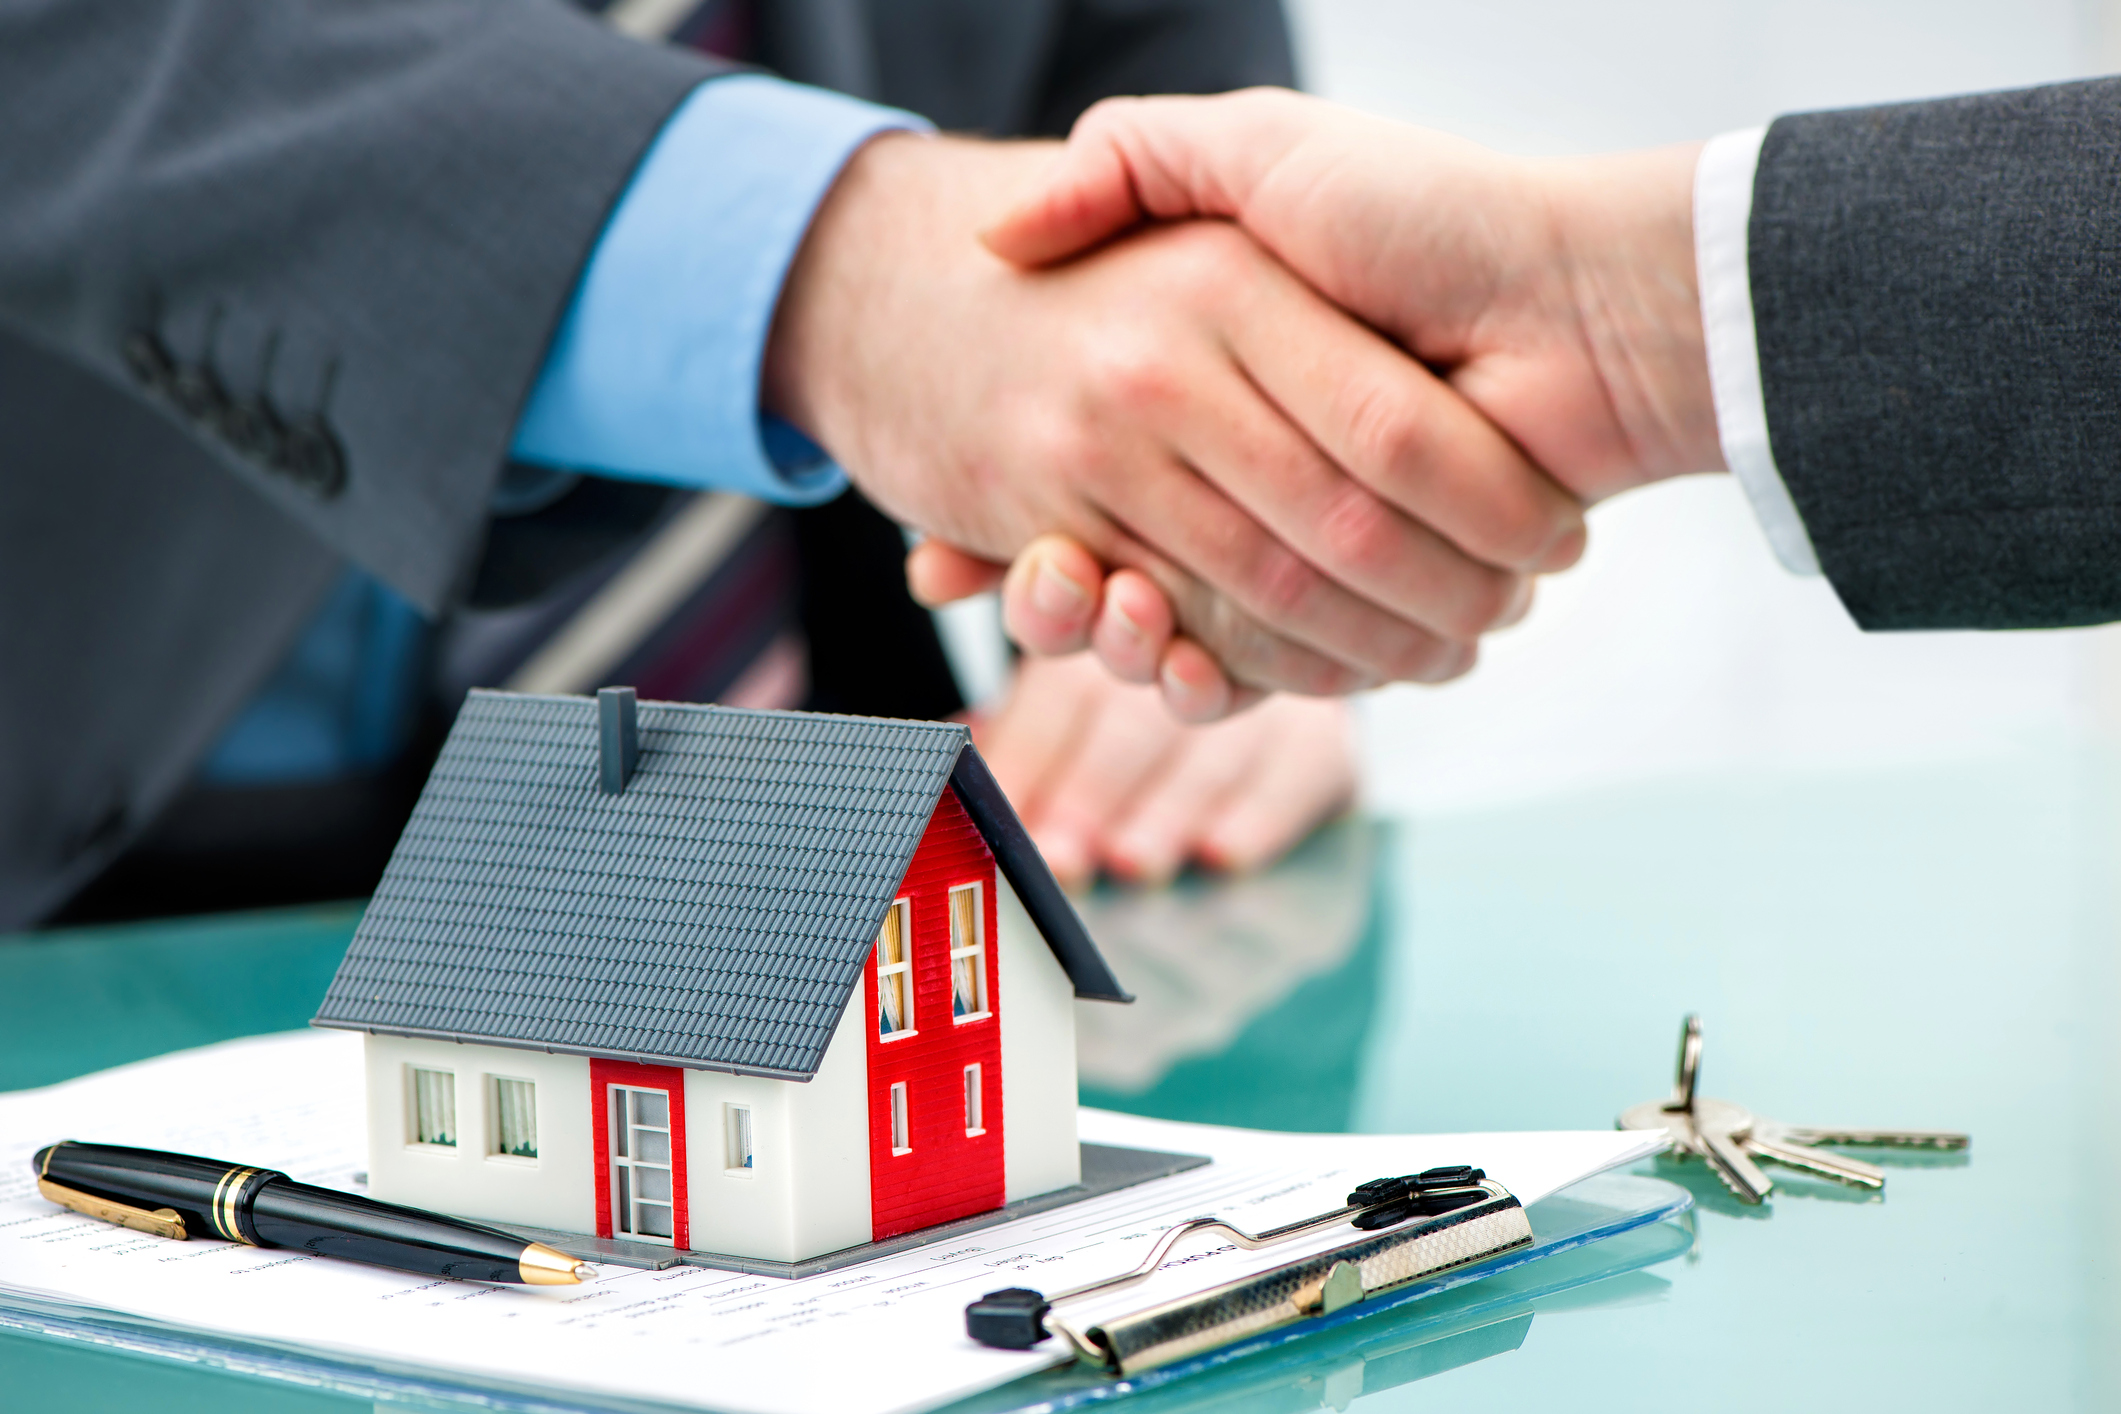 Estate agent shaking hands with customer after contract signature Contract buy sell house